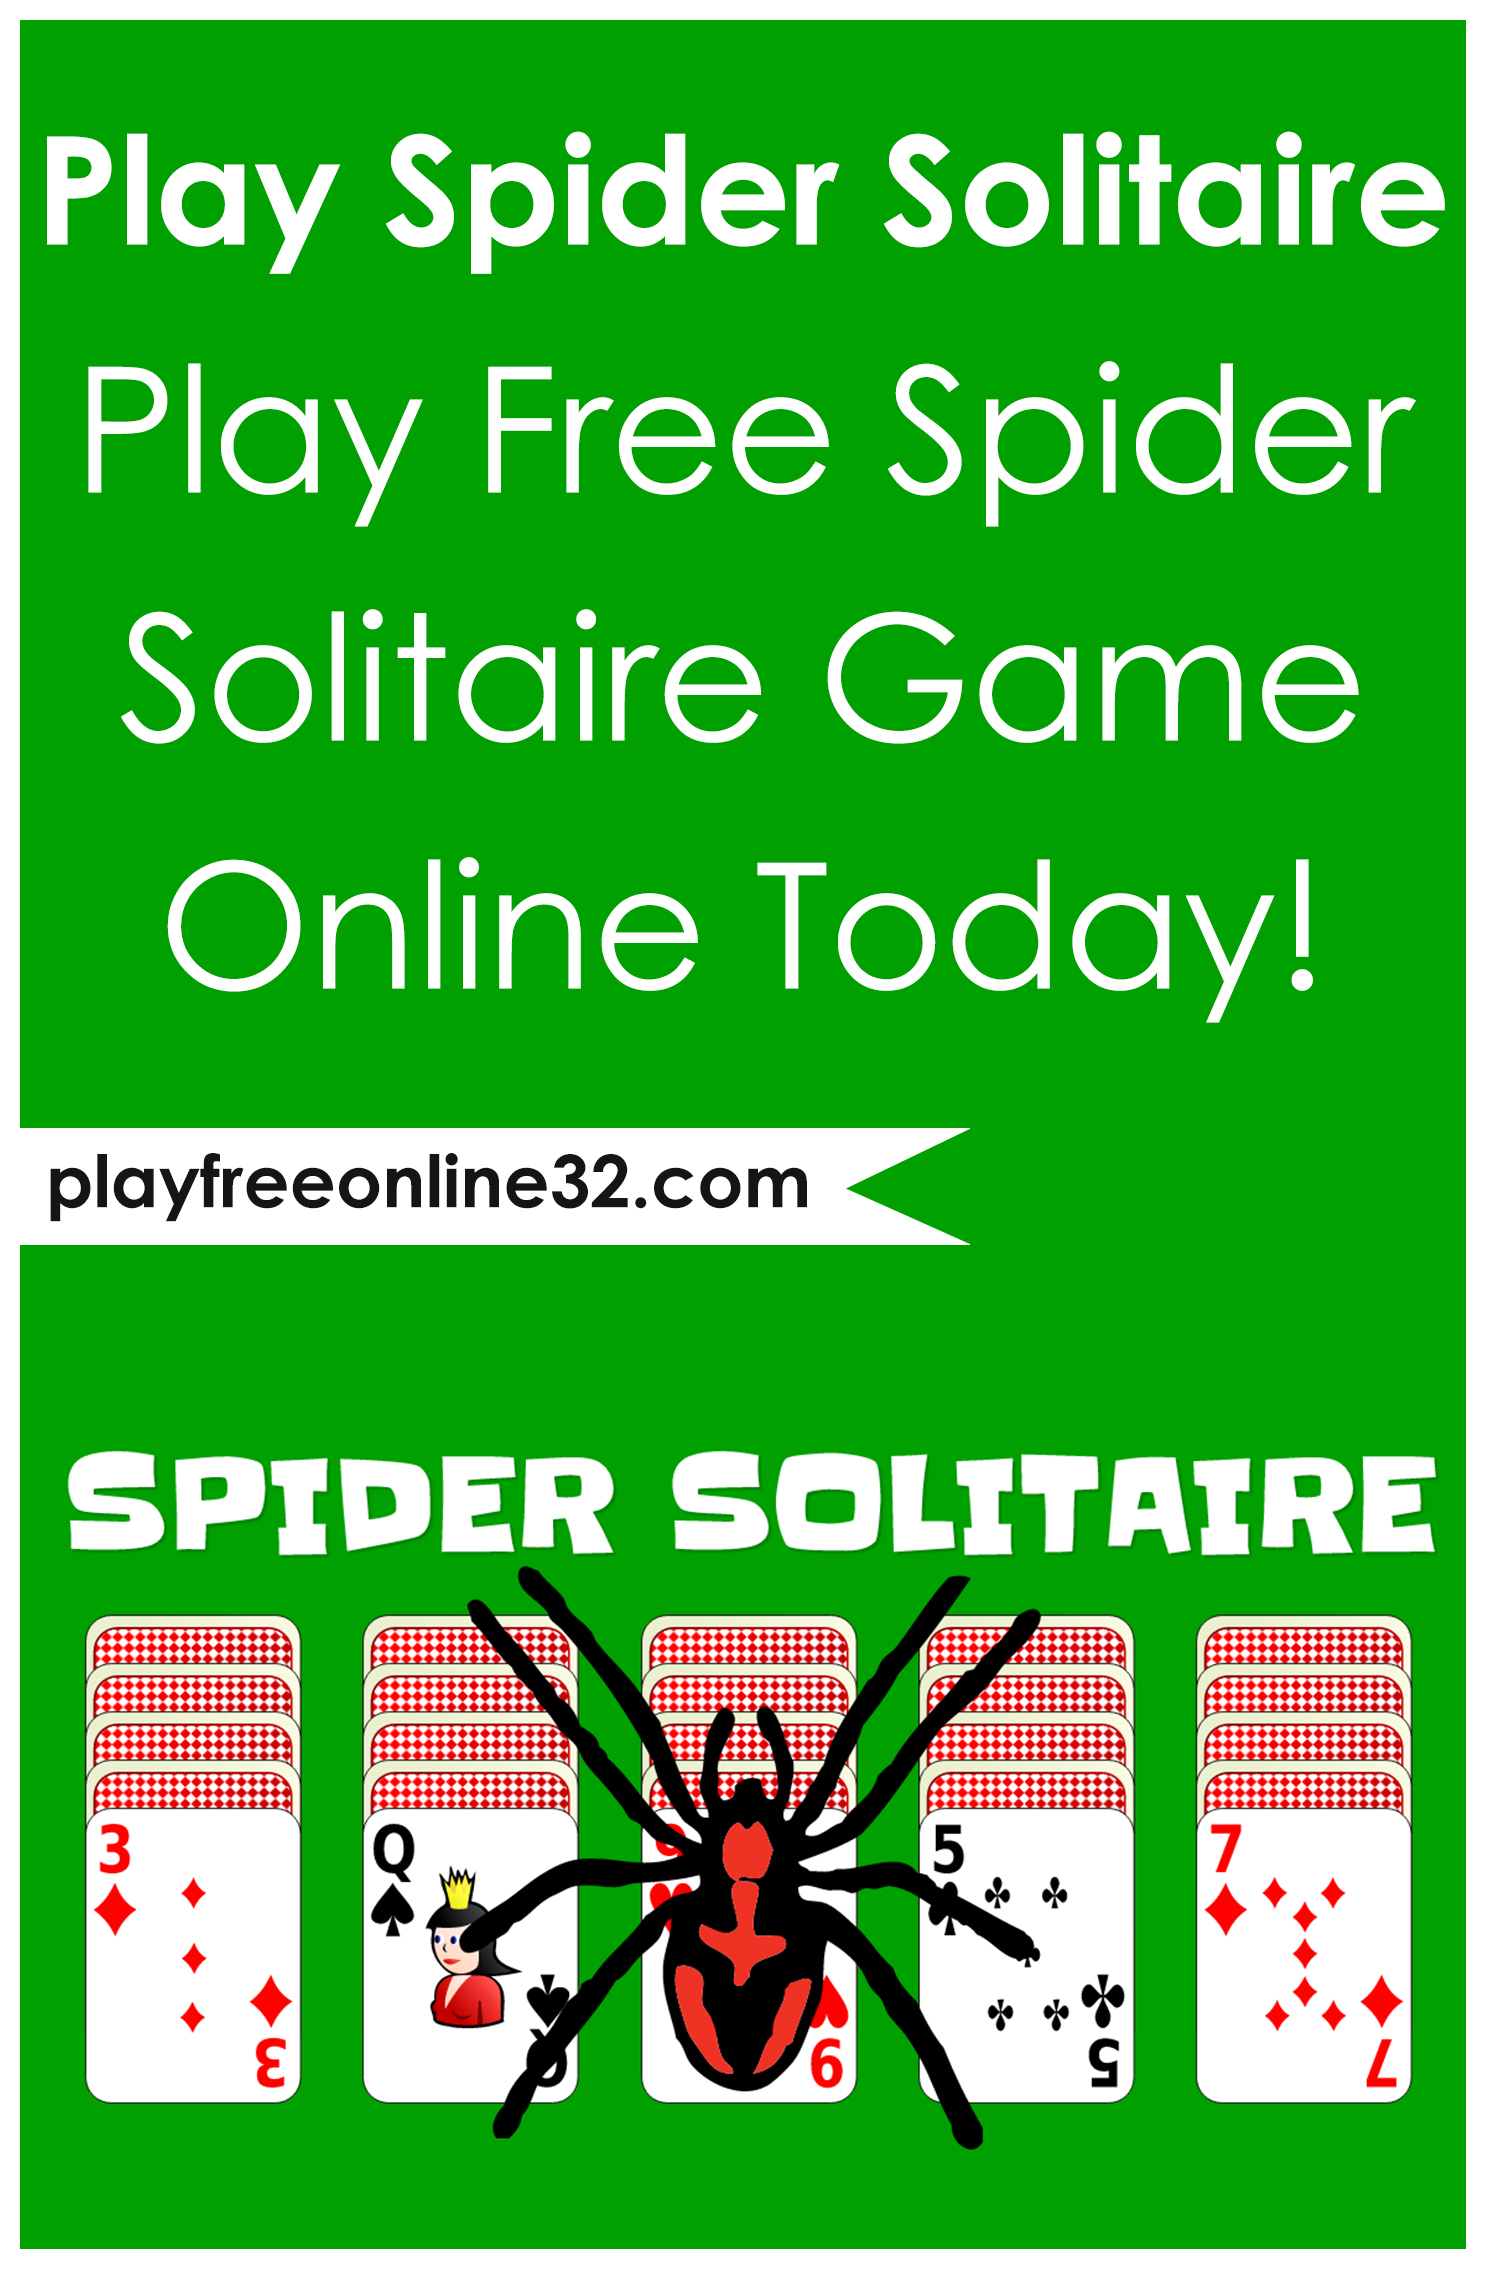 Play Spider Solitaire • Play Free Spider Solitaire Game Online Today!